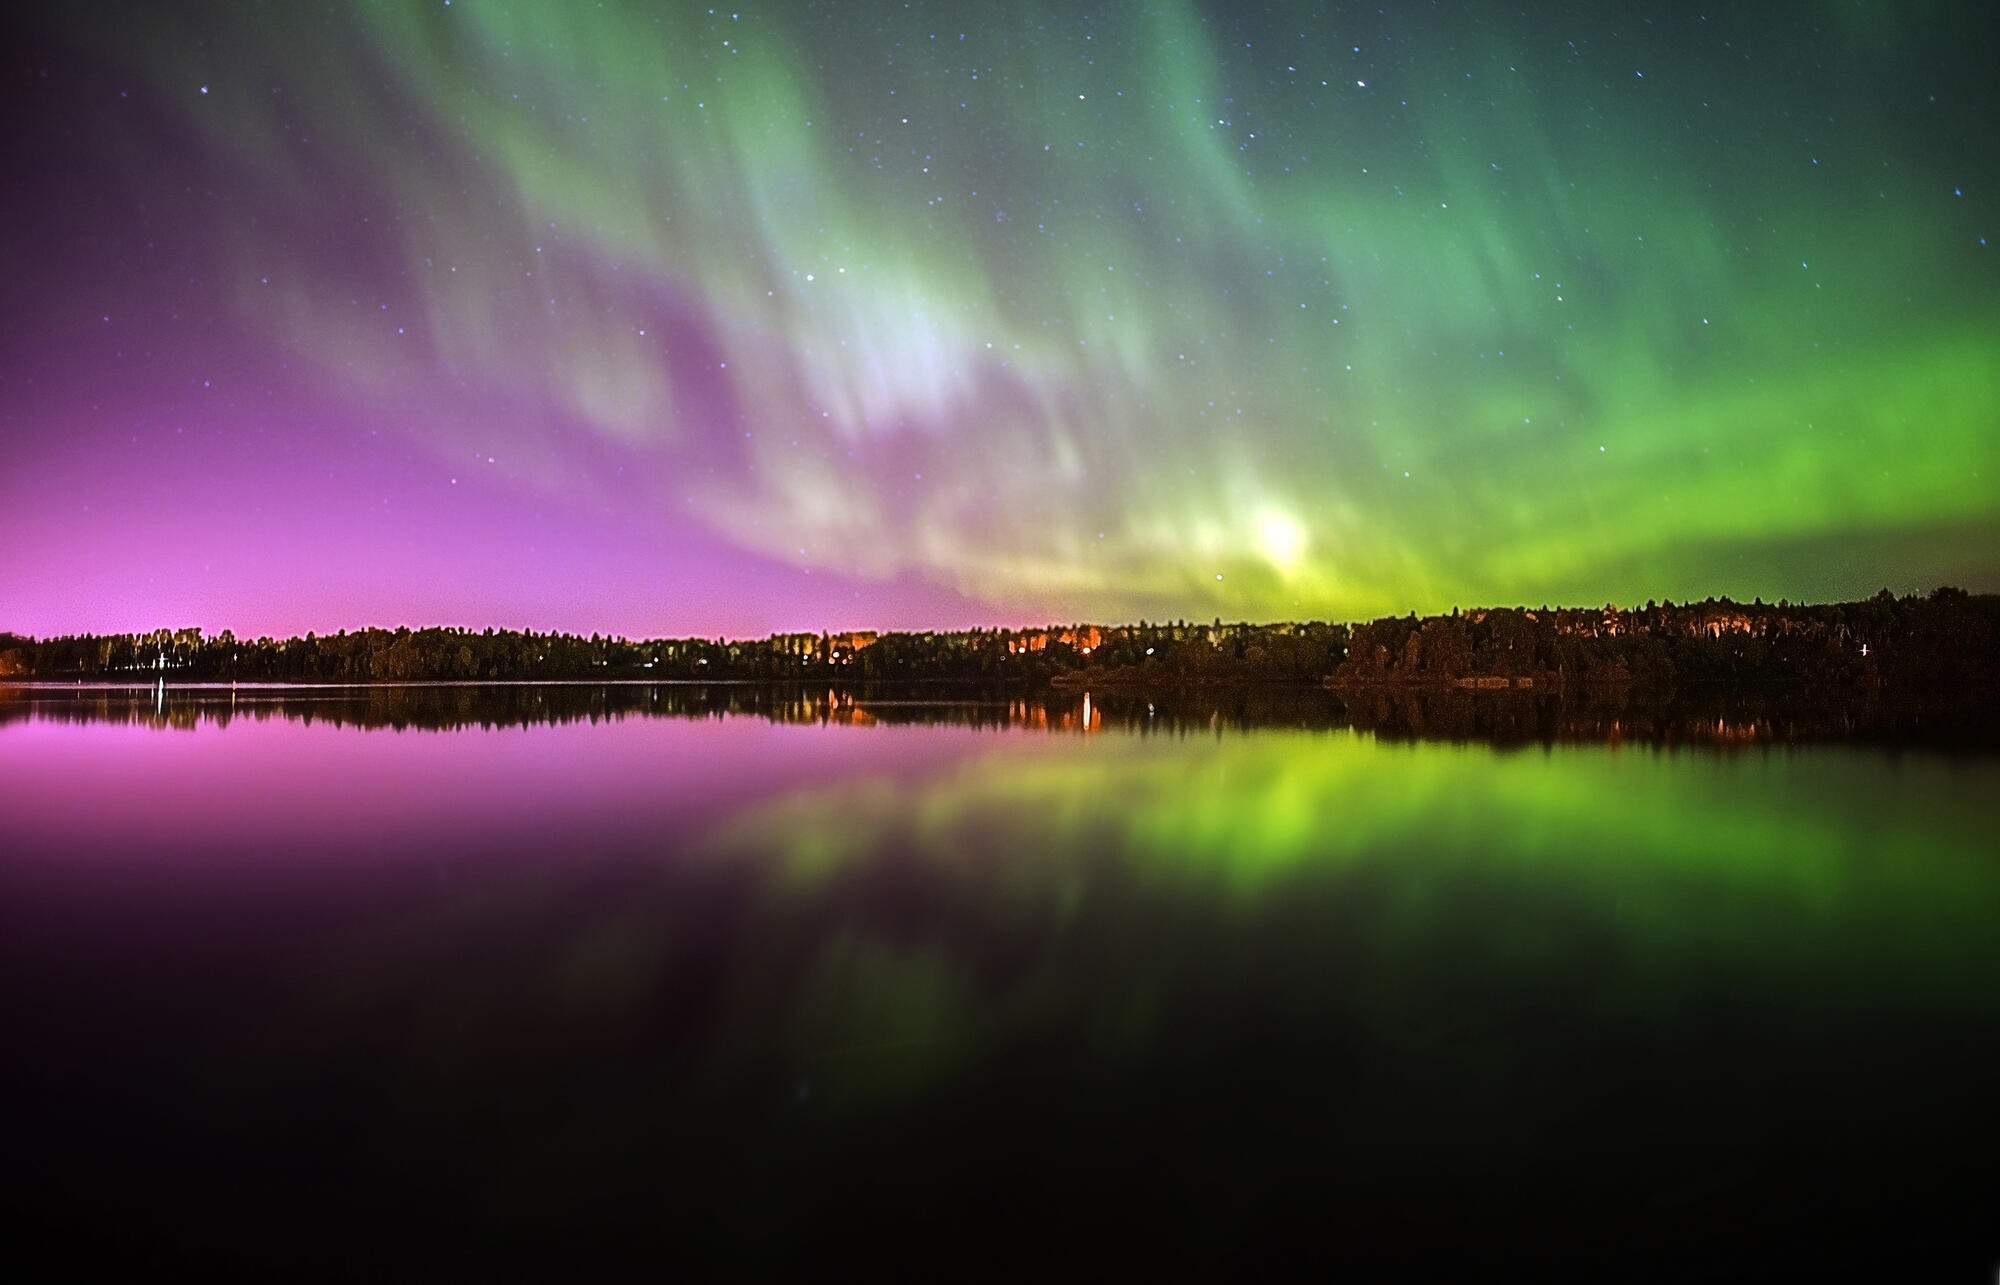 Do You Want To Take Better Photos Of The Northern Lights?